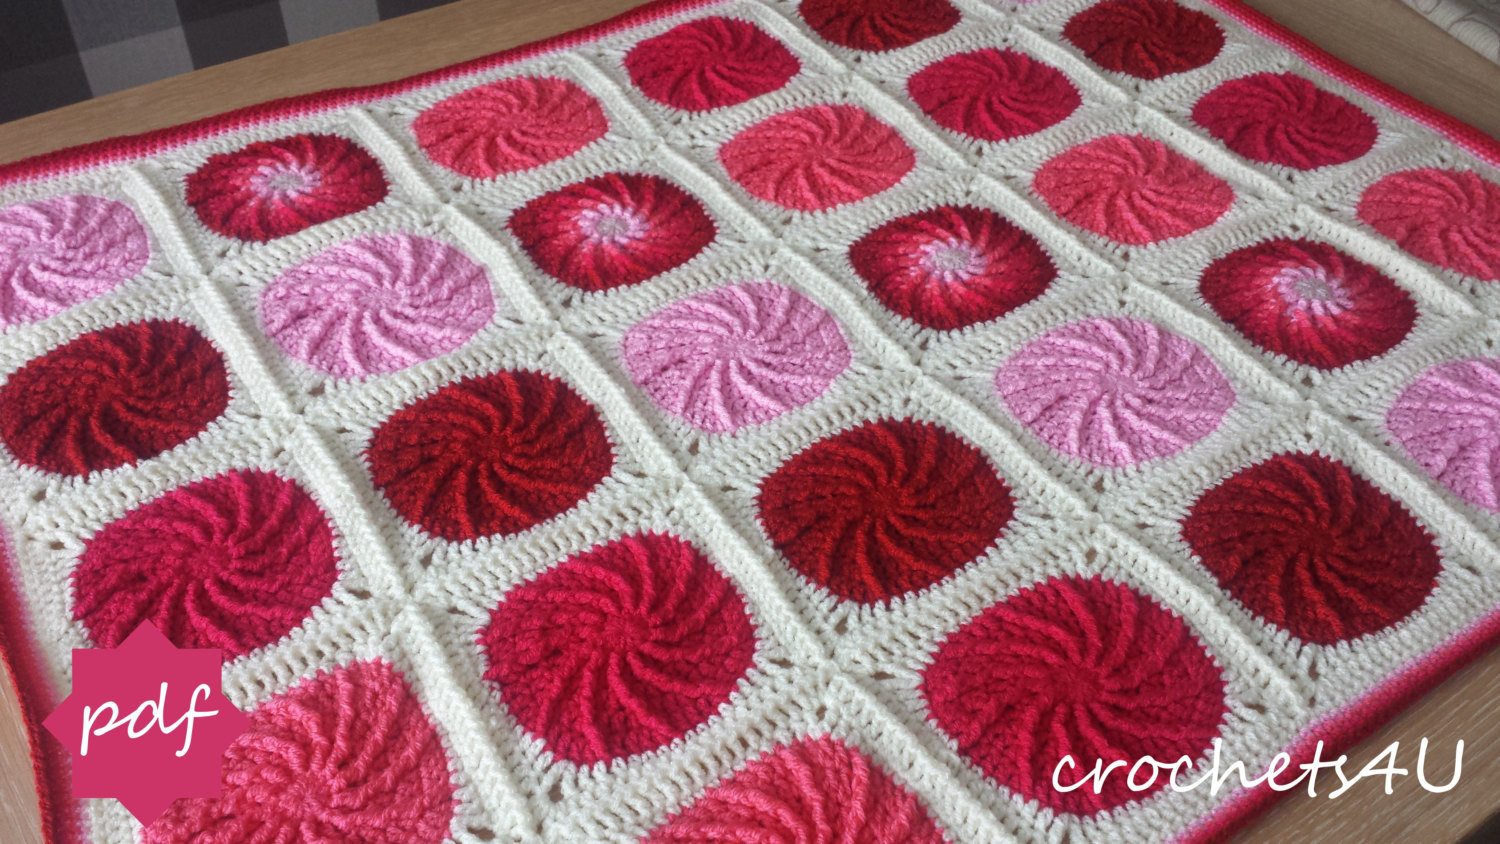 New Crochet Pattern Twirling Circle Afghan Crochet Blanket Crochet Circle Blanket Of Innovative 46 Models Crochet Circle Blanket